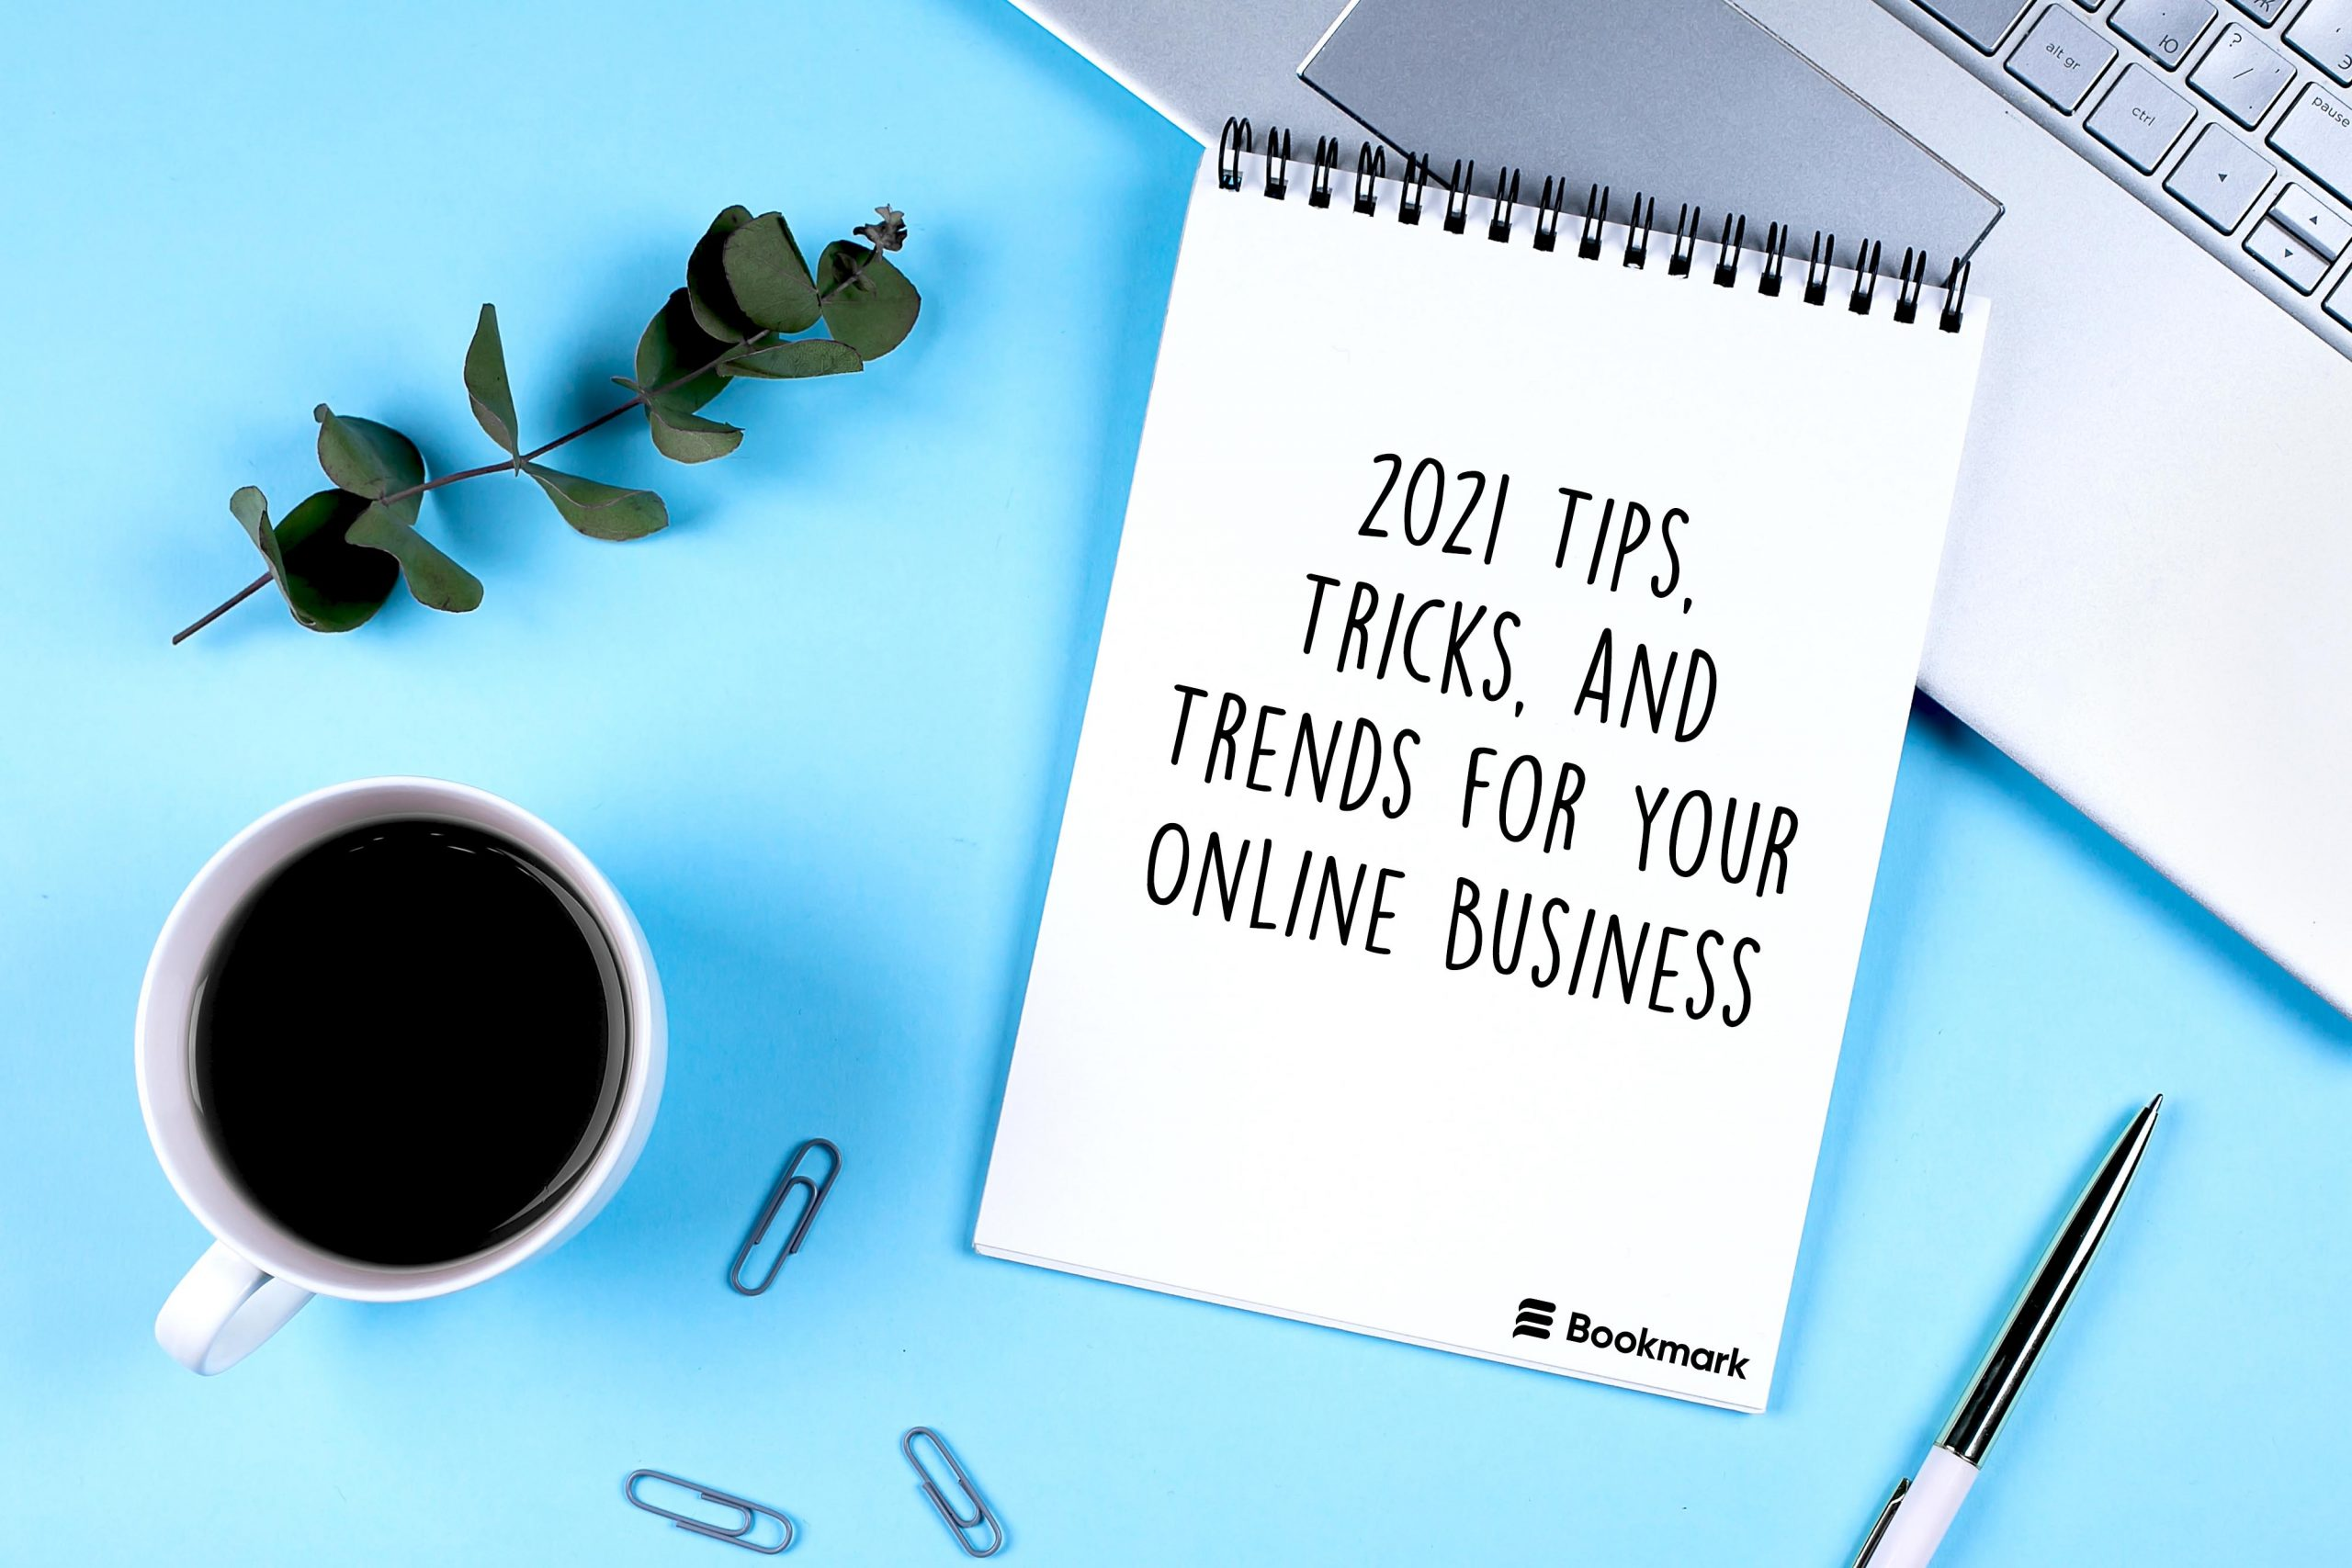 2021 Tips, Tricks, and Trends for Your Online Business